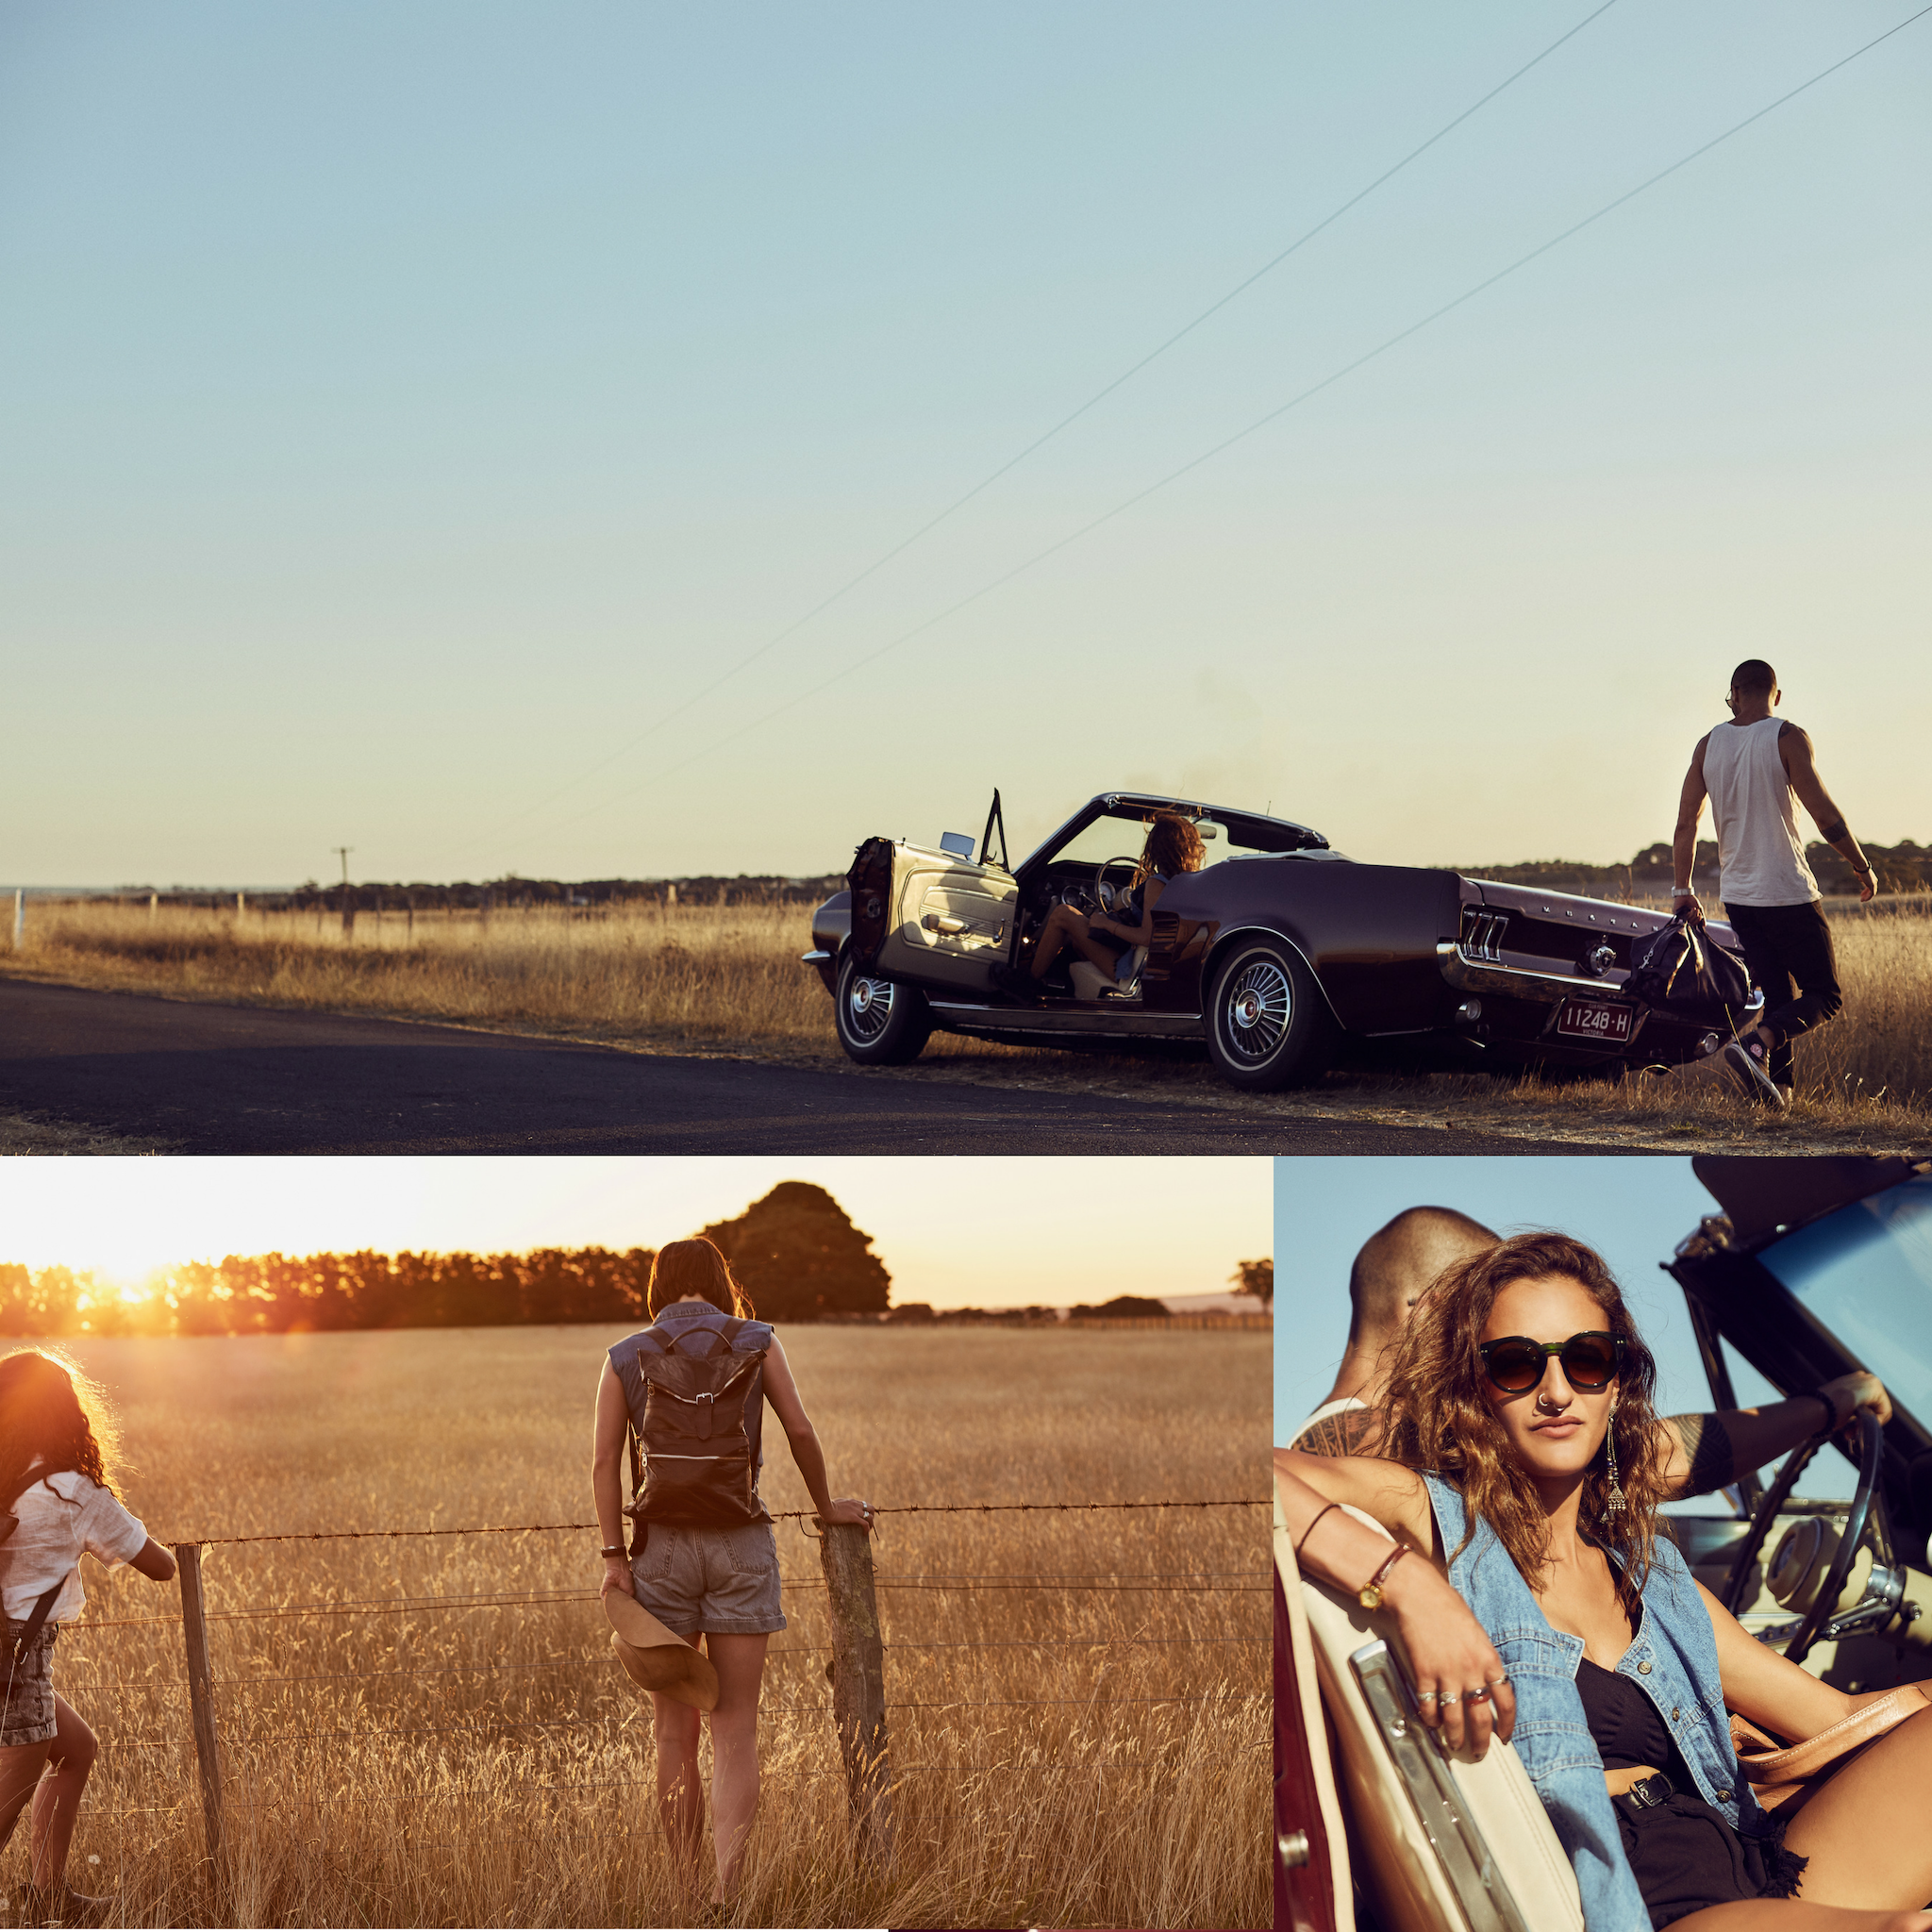 Mustang convertible in Australian outback, Two girls walking into the sunset, girl sitting in car all featuring vegetable tanned leather bags